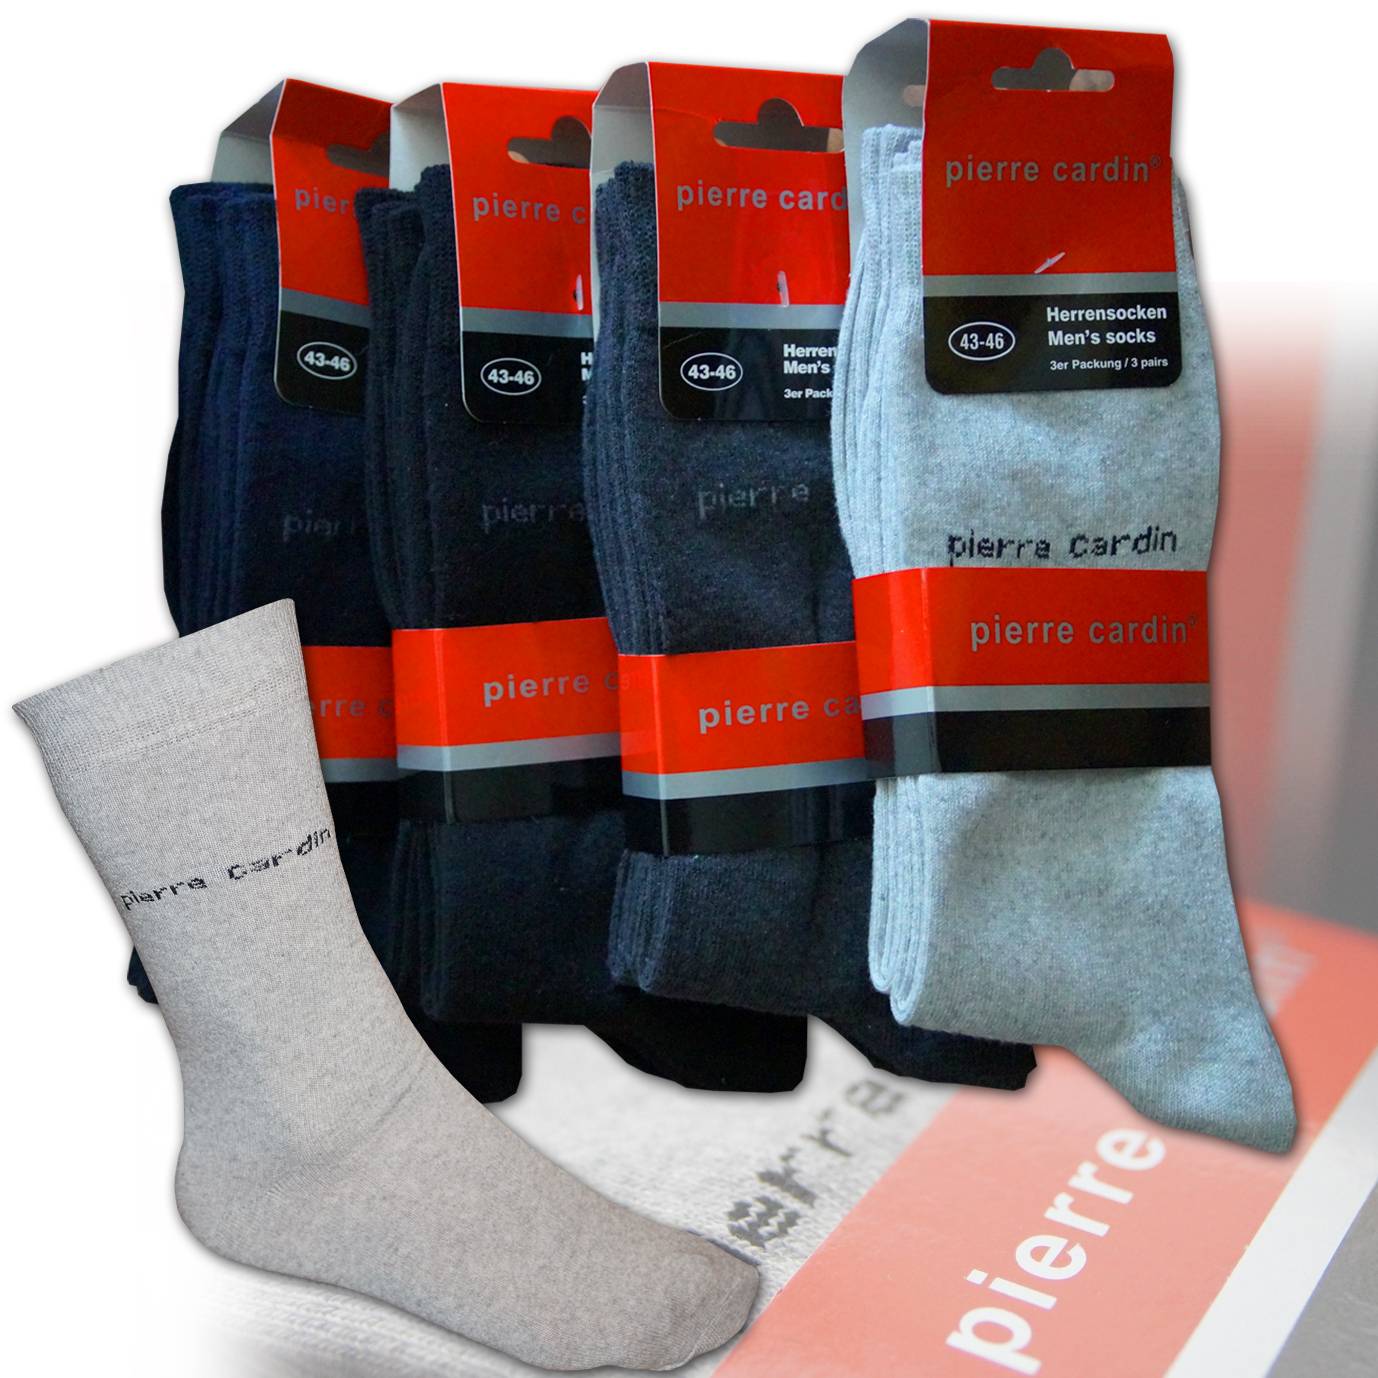 original pierre cardin business socken 9 18 paar herrensocken str mpfe socks men ebay. Black Bedroom Furniture Sets. Home Design Ideas